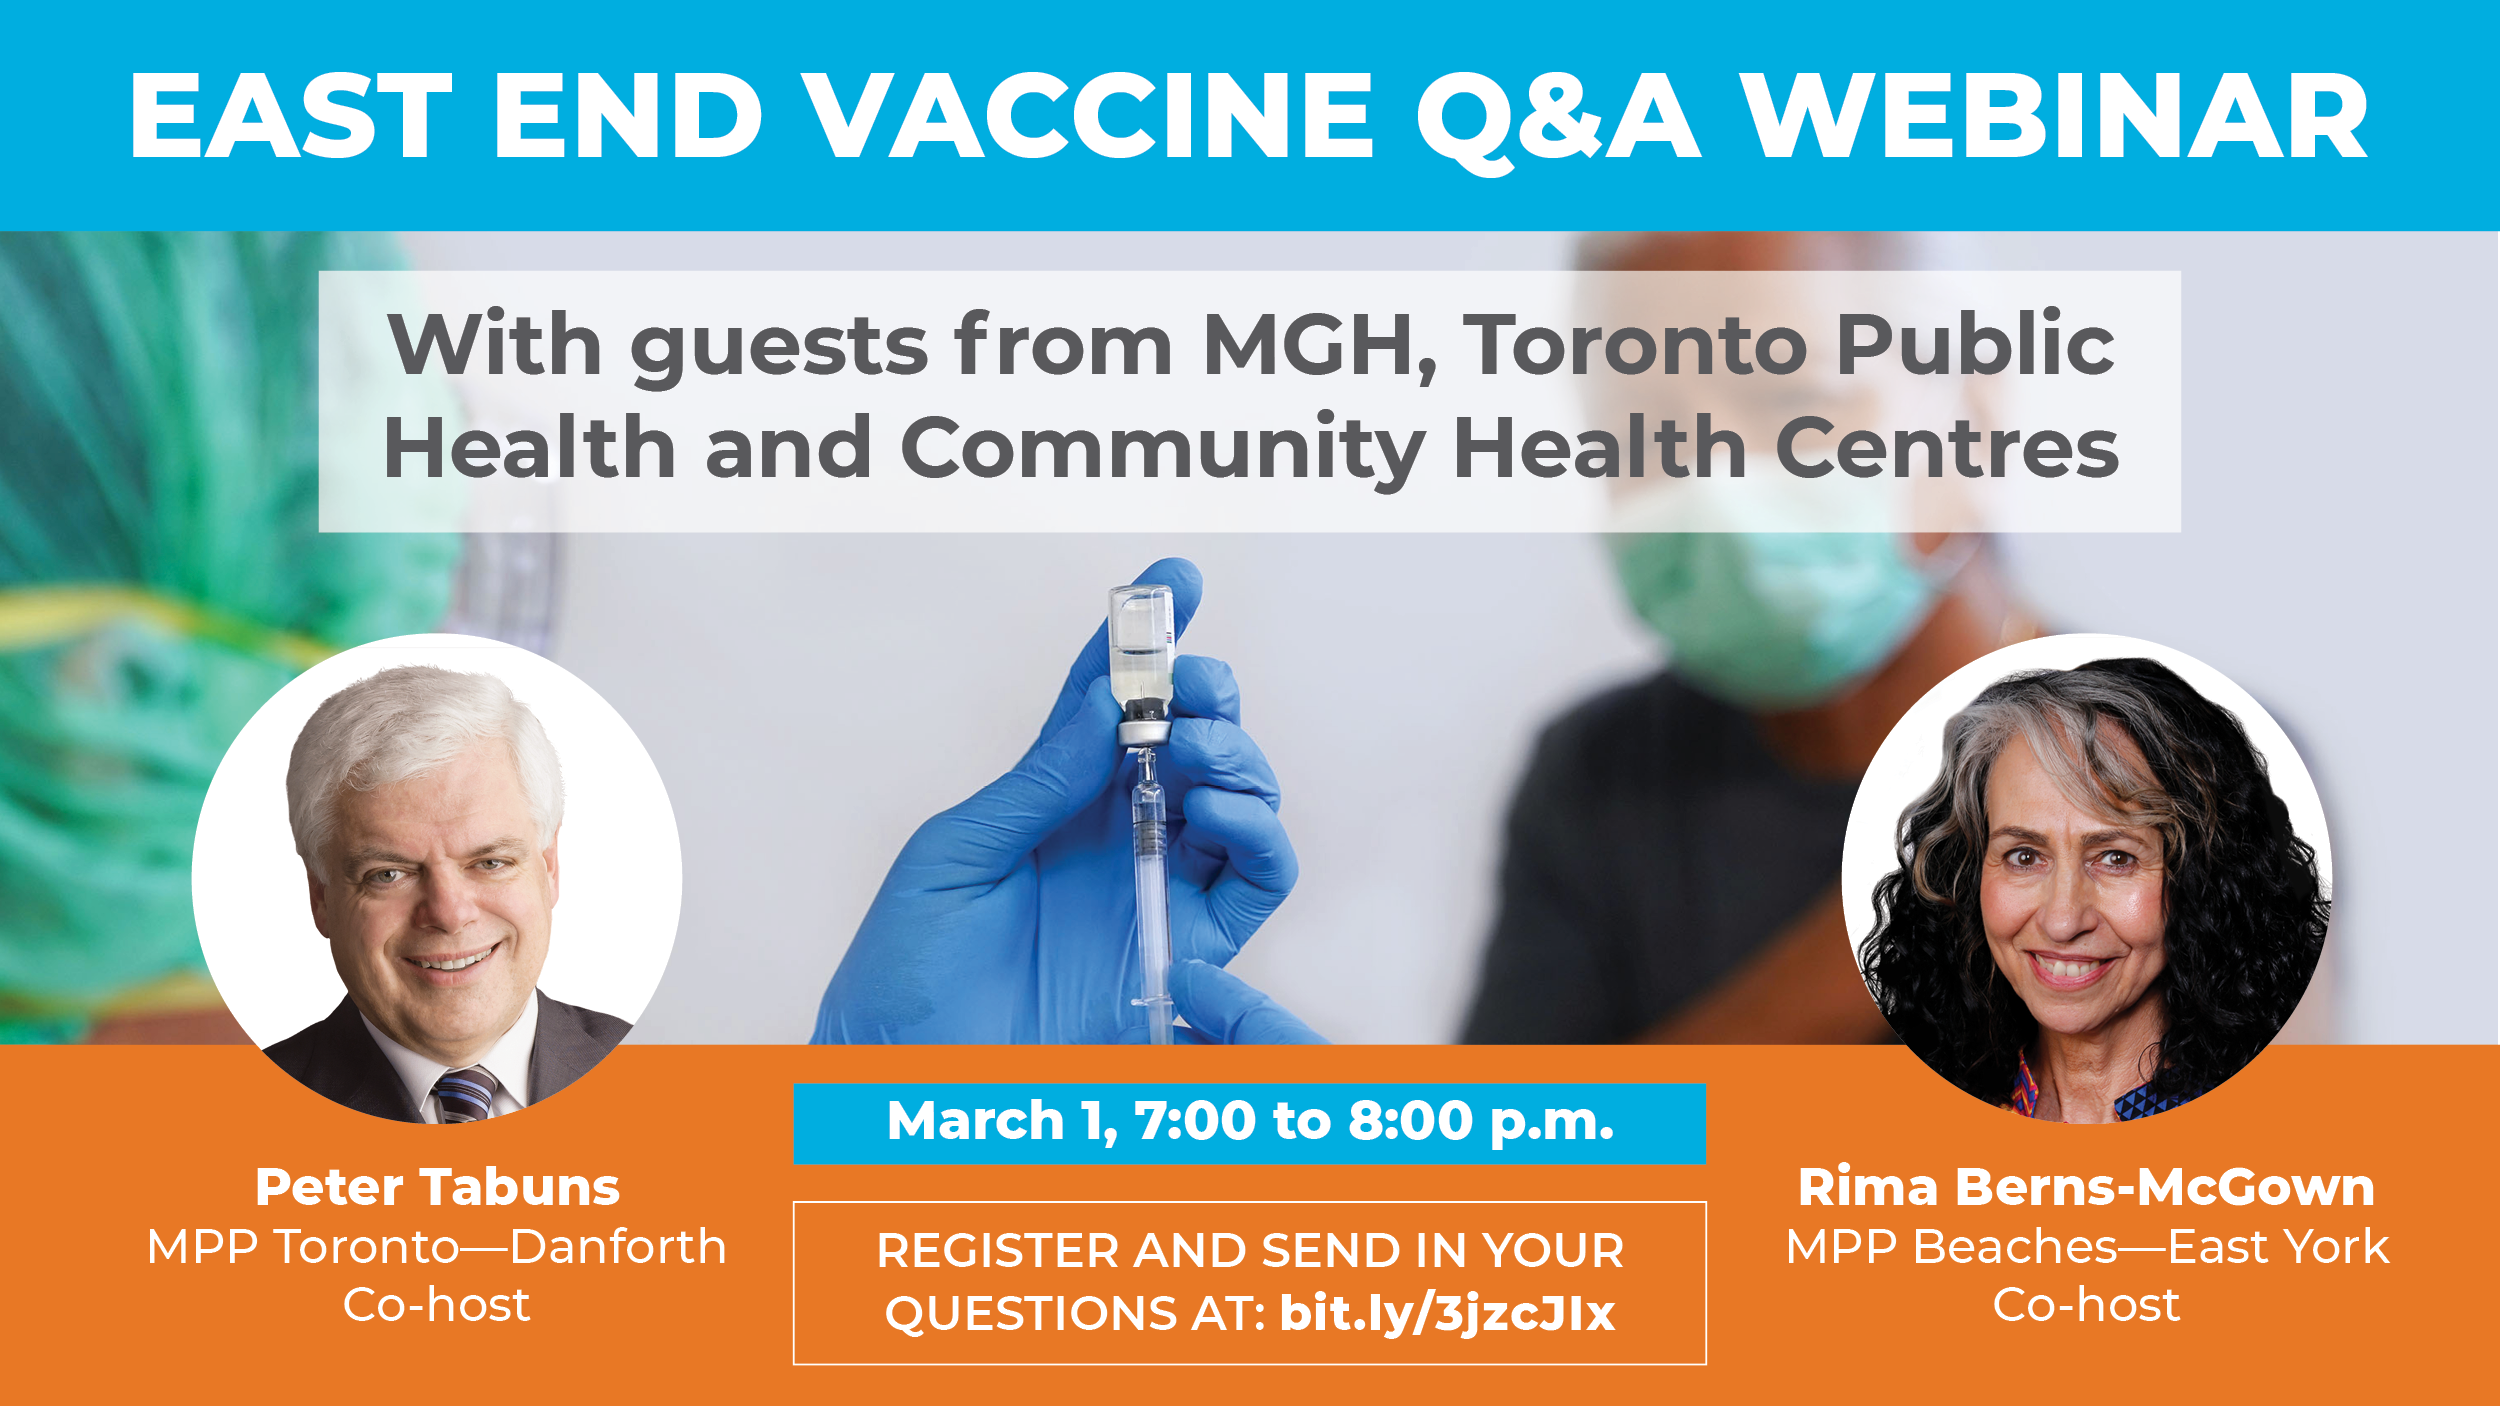 Detail of the Vaccine Q&A Webinar